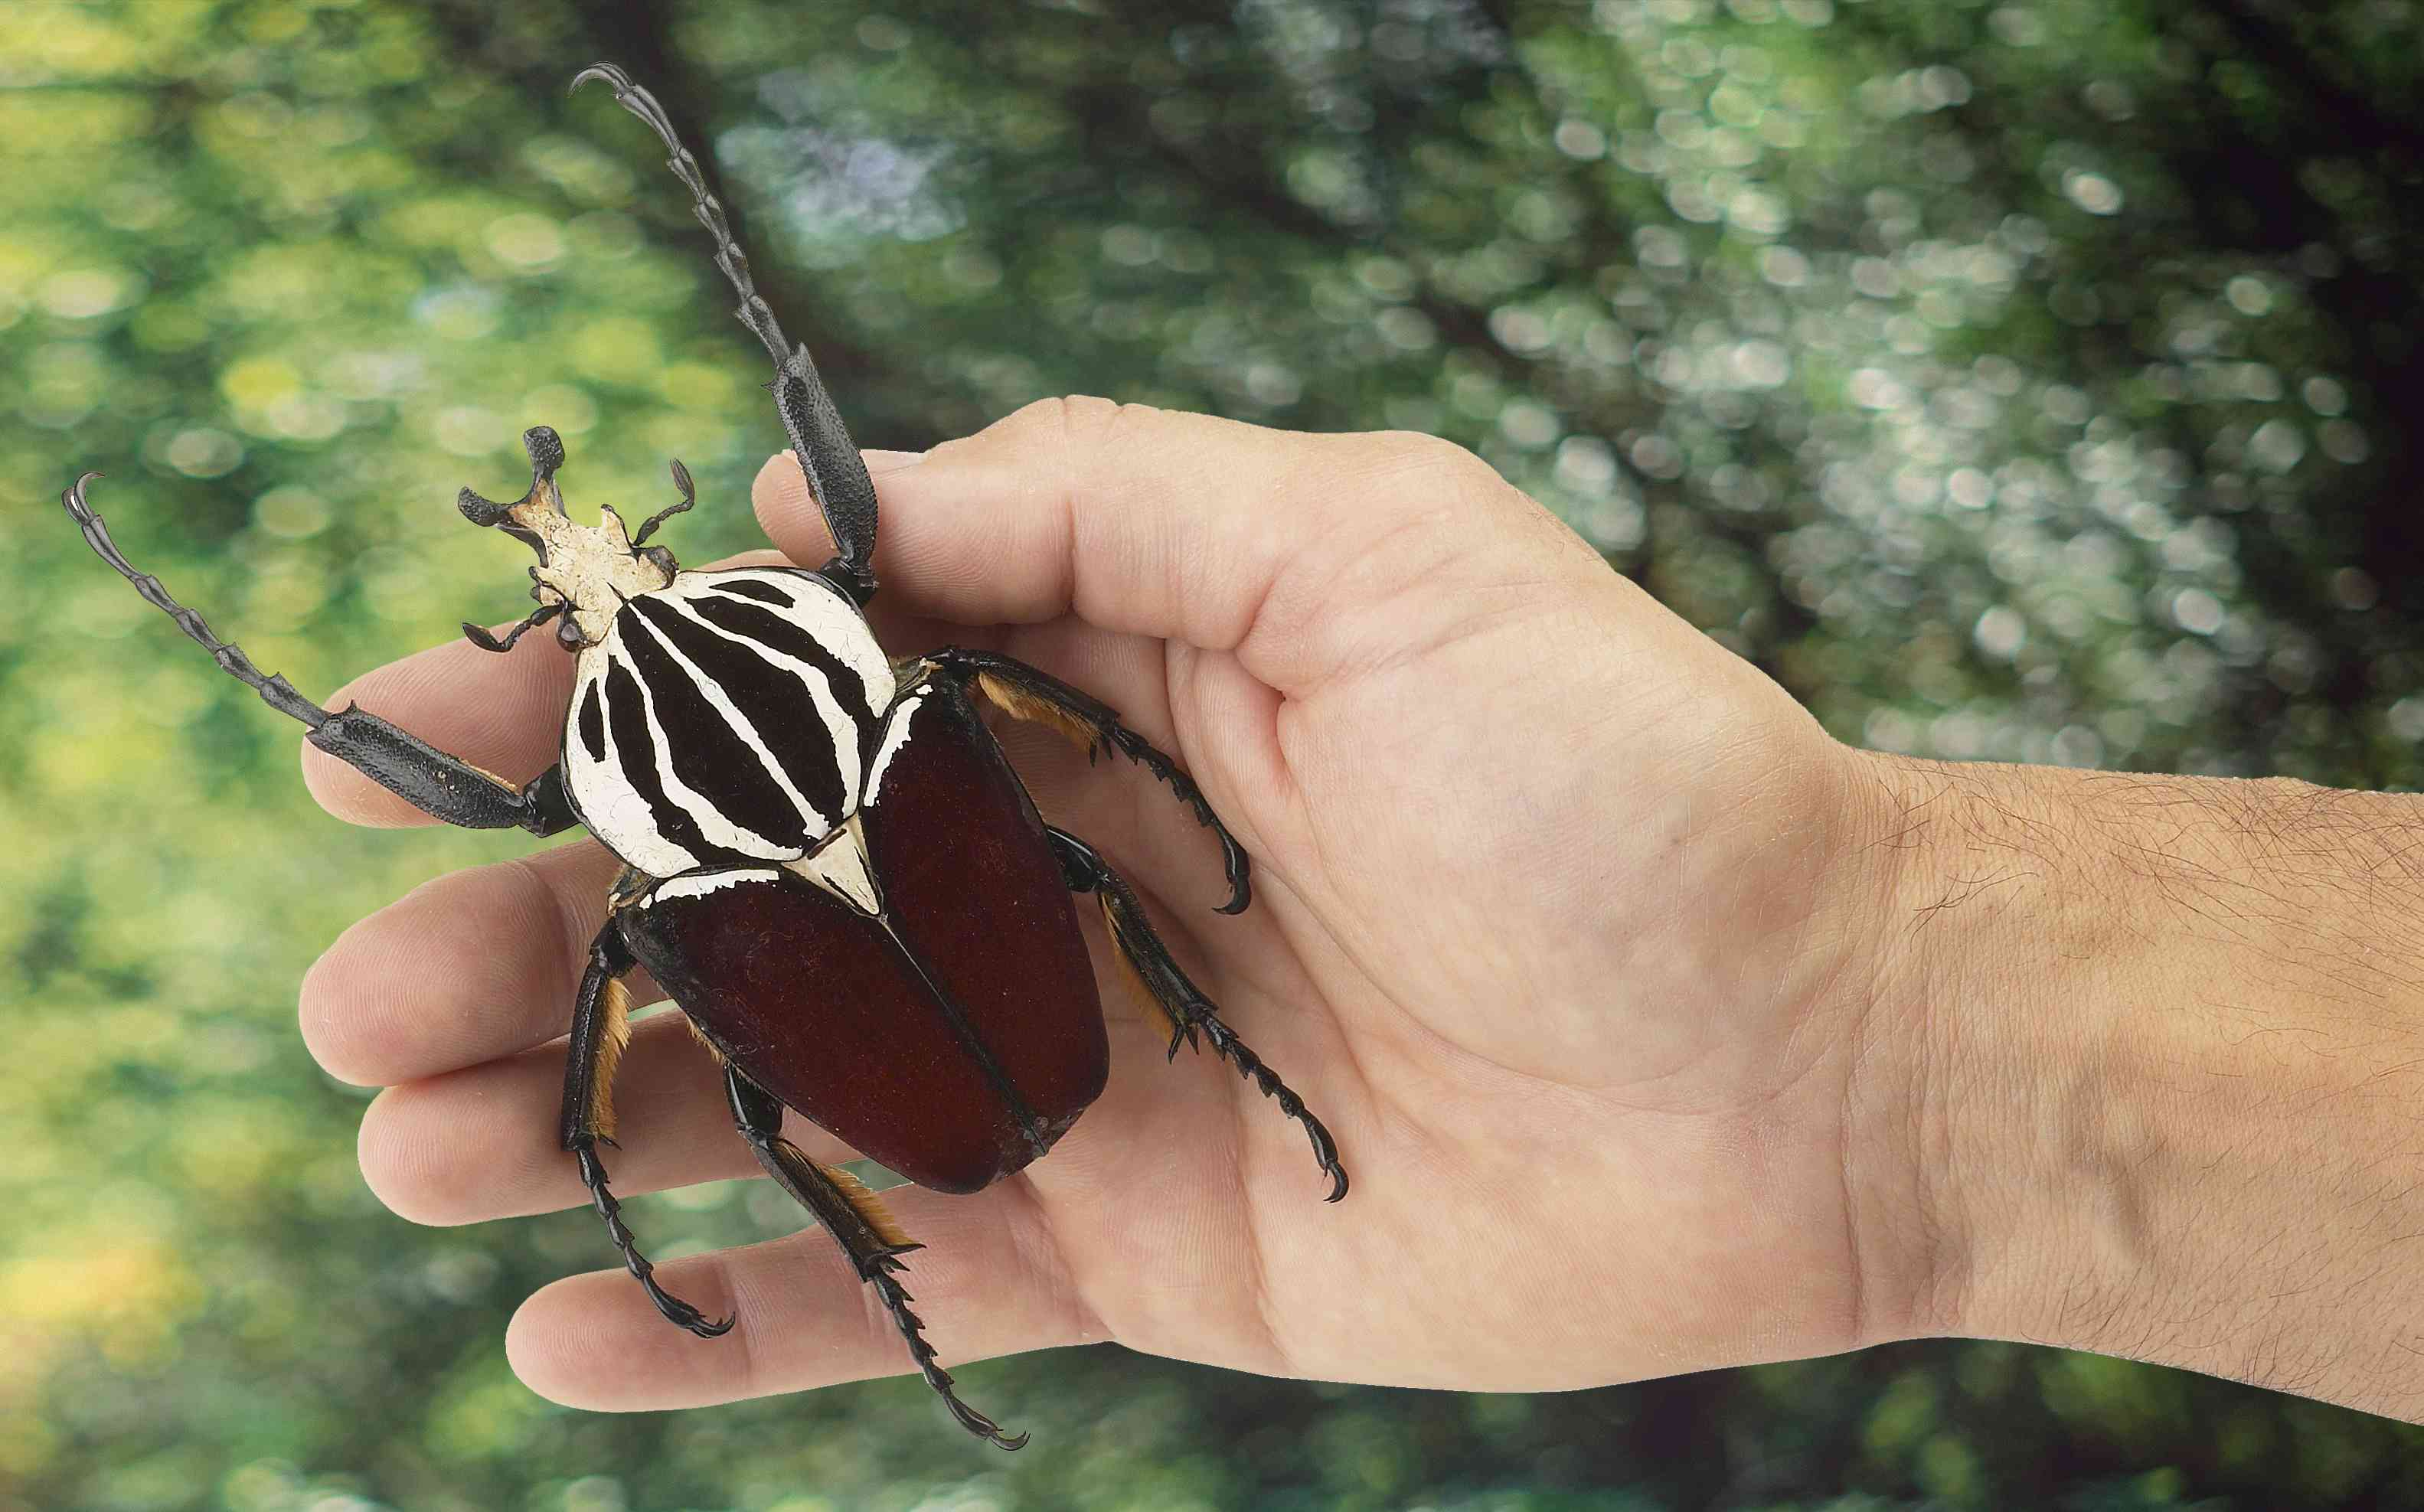 a brown, black, and white goliath beetle resting in a person's palm